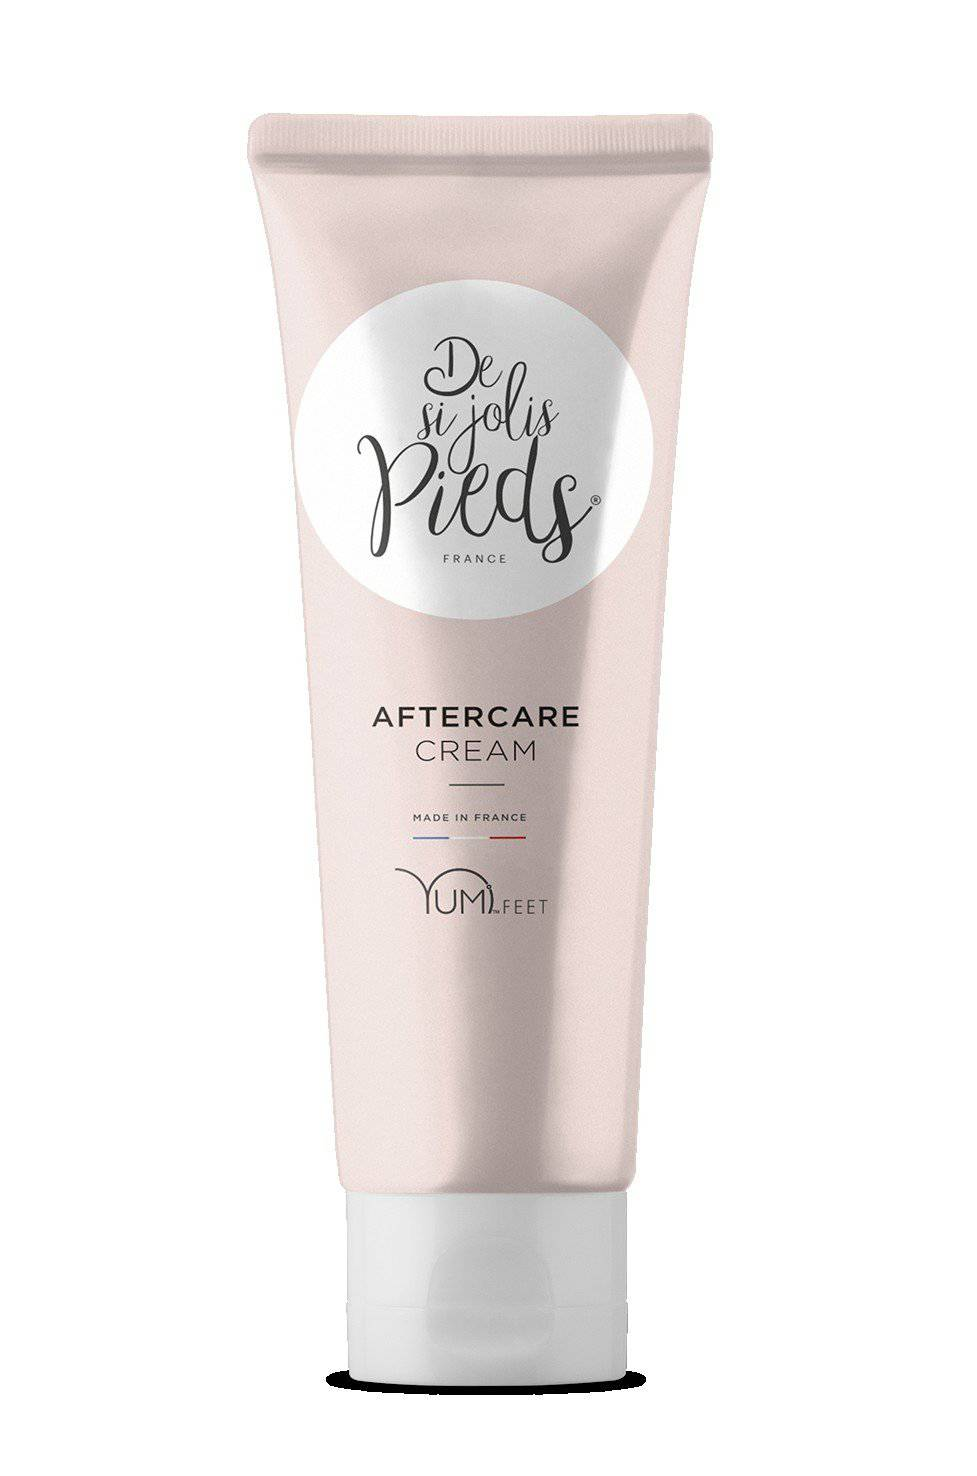 Aftercare Cream